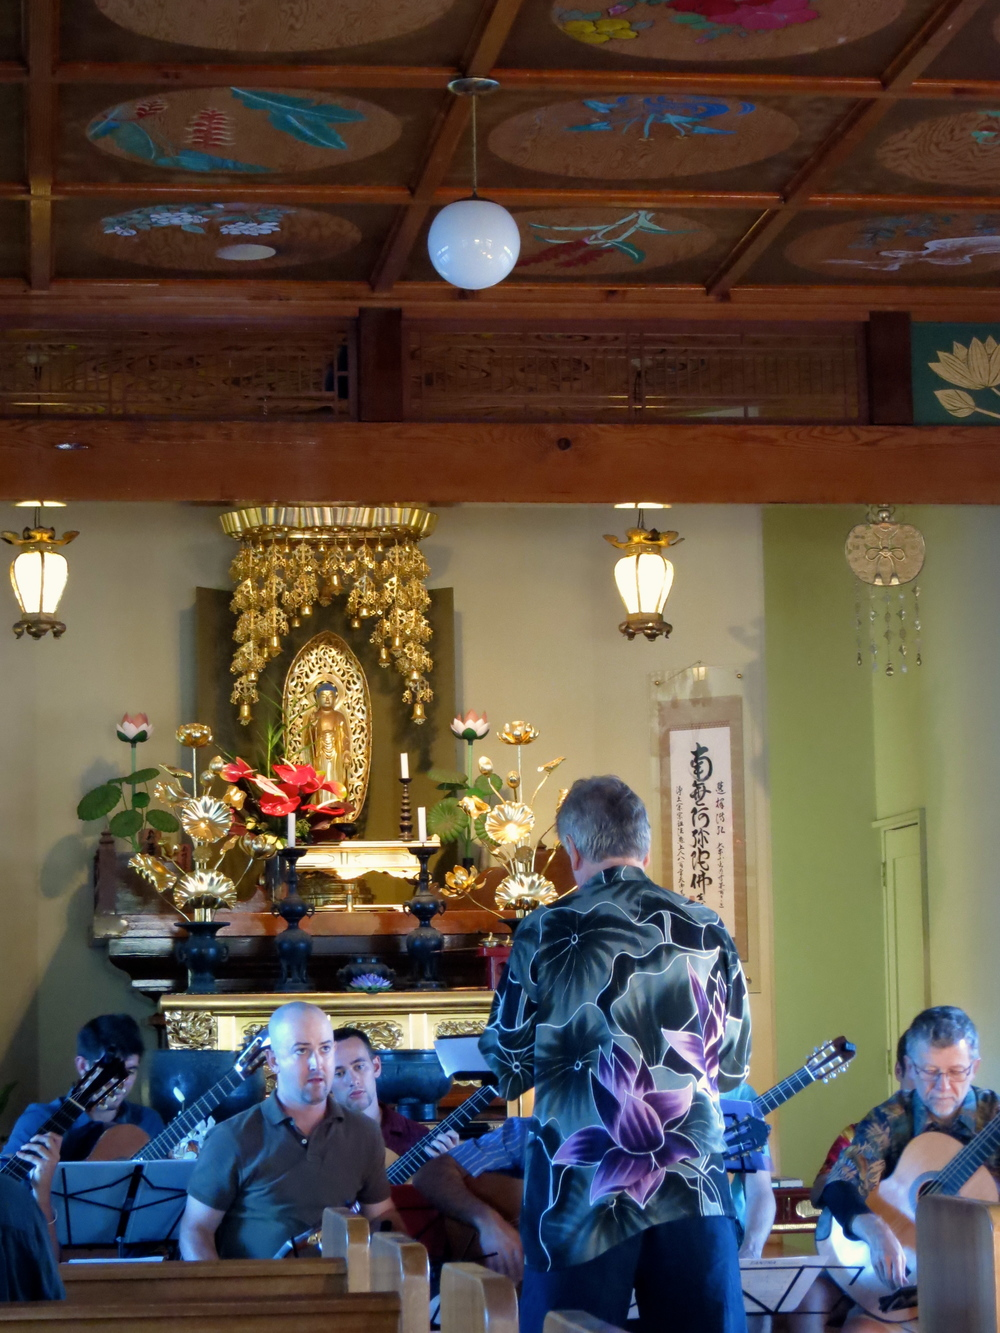 Ben Verdery conducting the Maui Honu Guitar Orchestra at Lahaina Jodo Mission (2014)